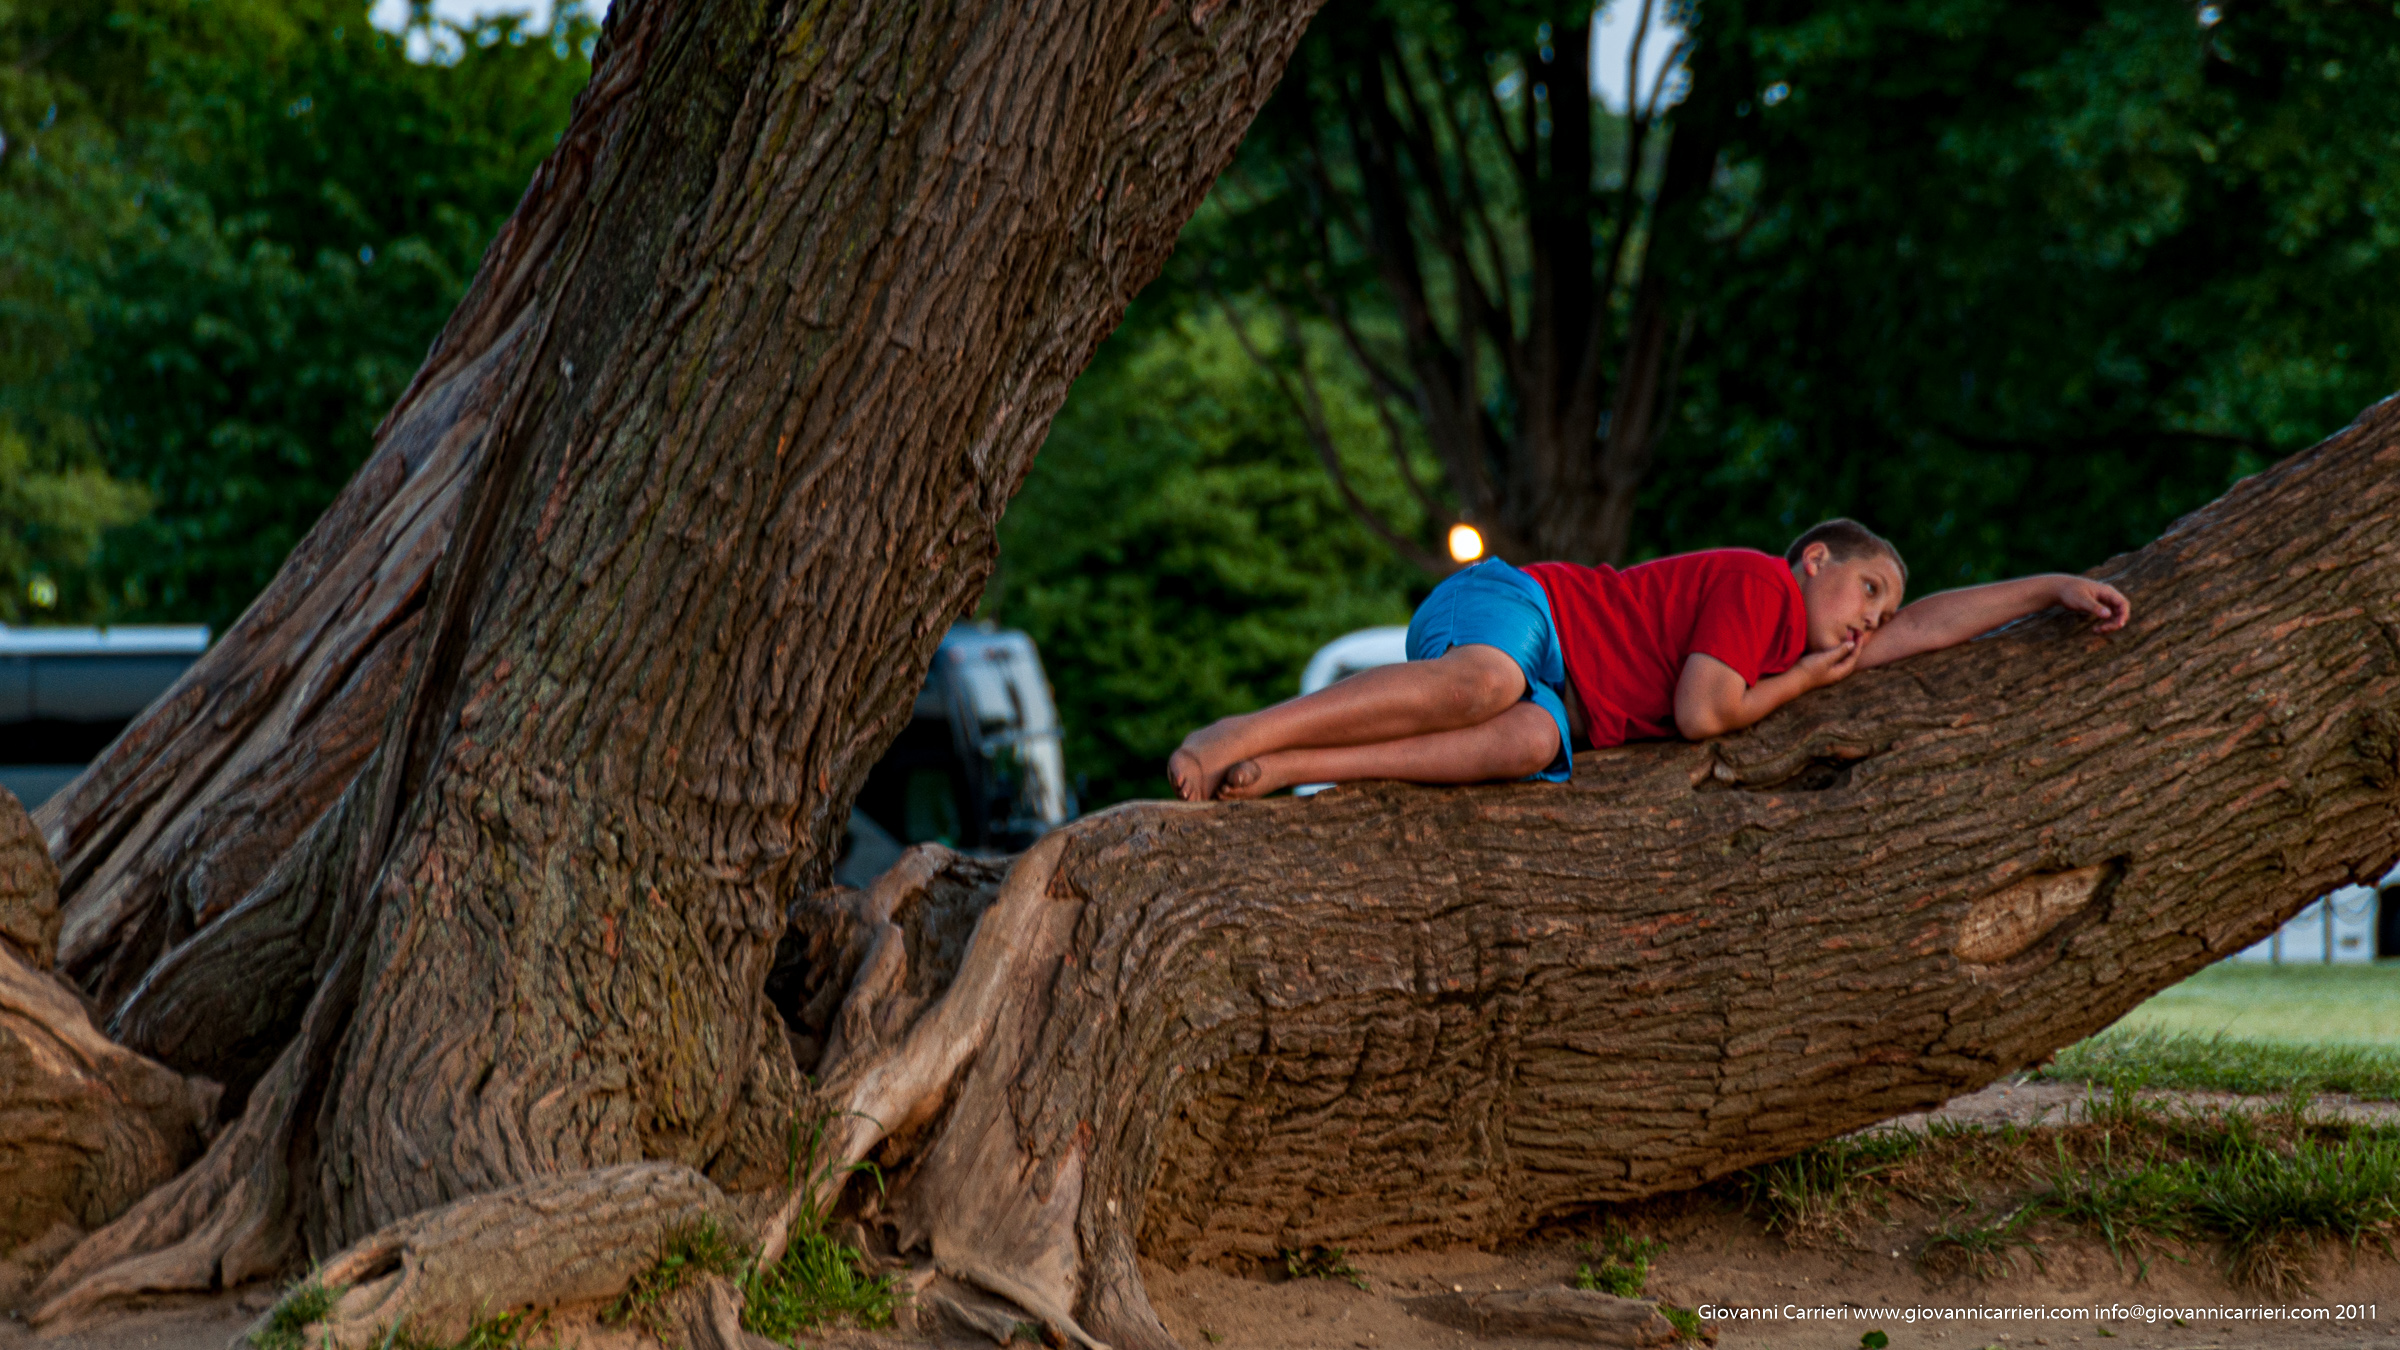 Relax on tree - Manhattan